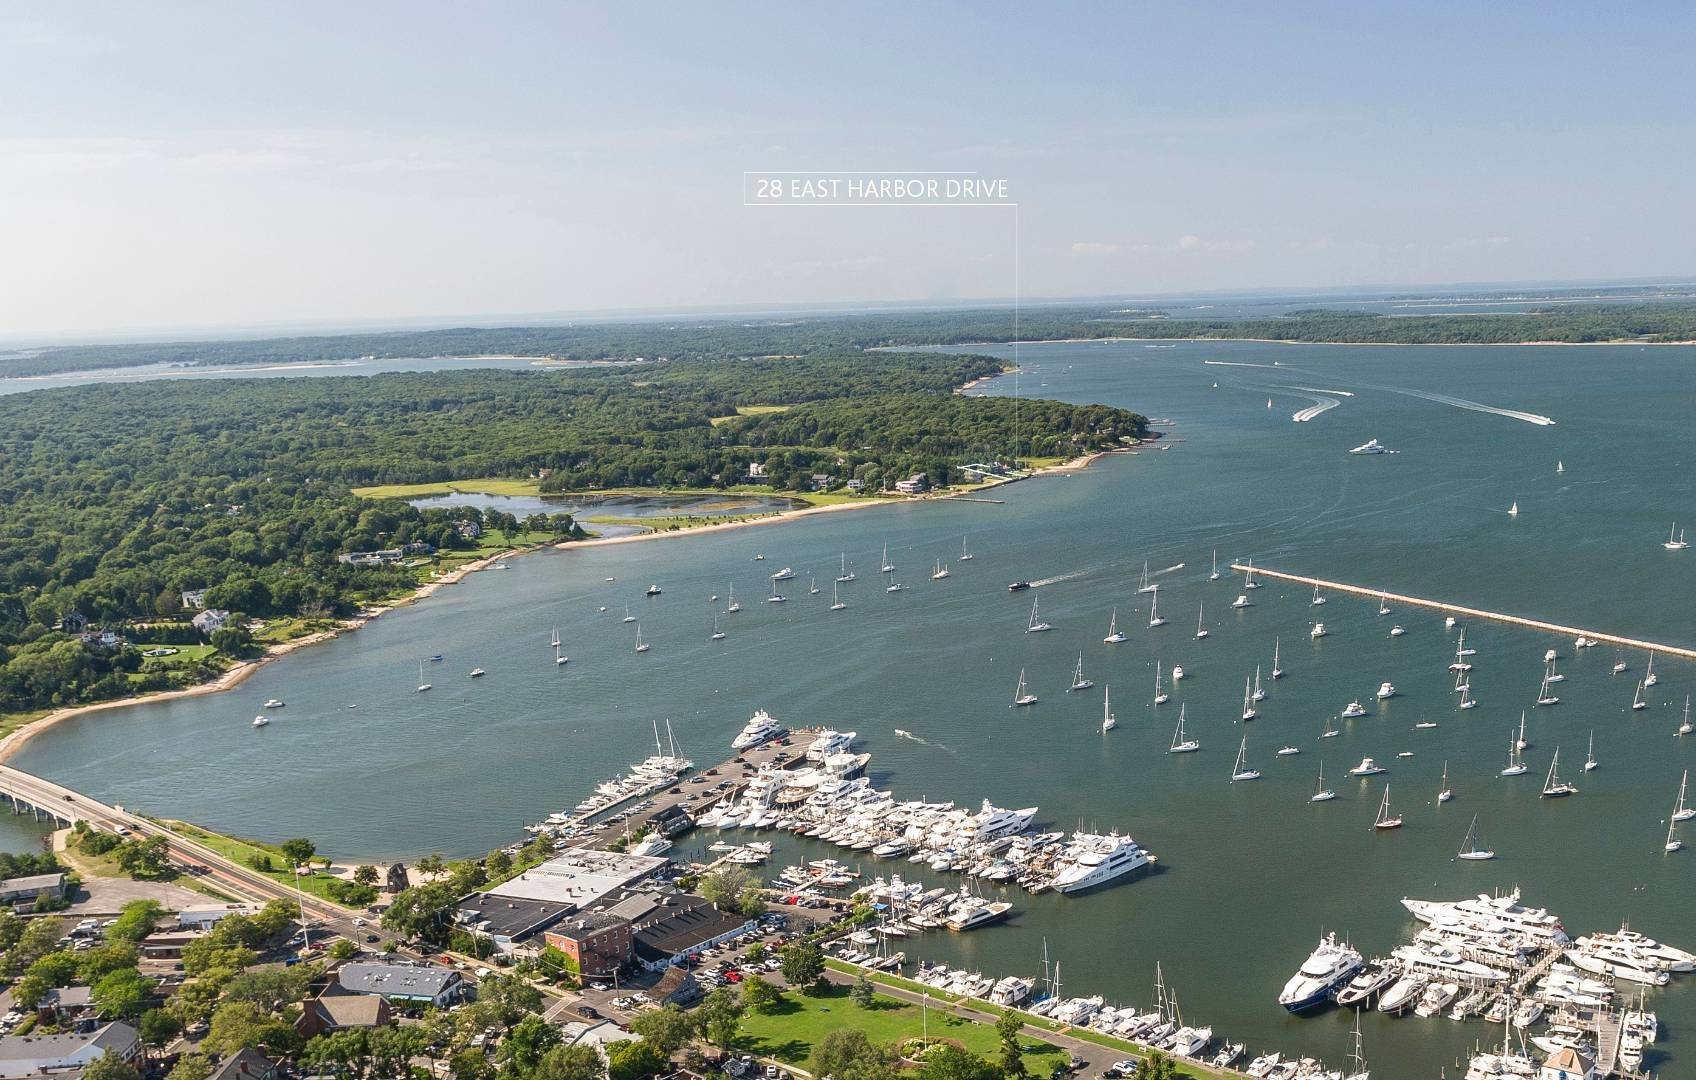 Single Family Home for Sale at Waterfront Architectural Dream 28 East Harbor Drive, Sag Harbor, NY 11963